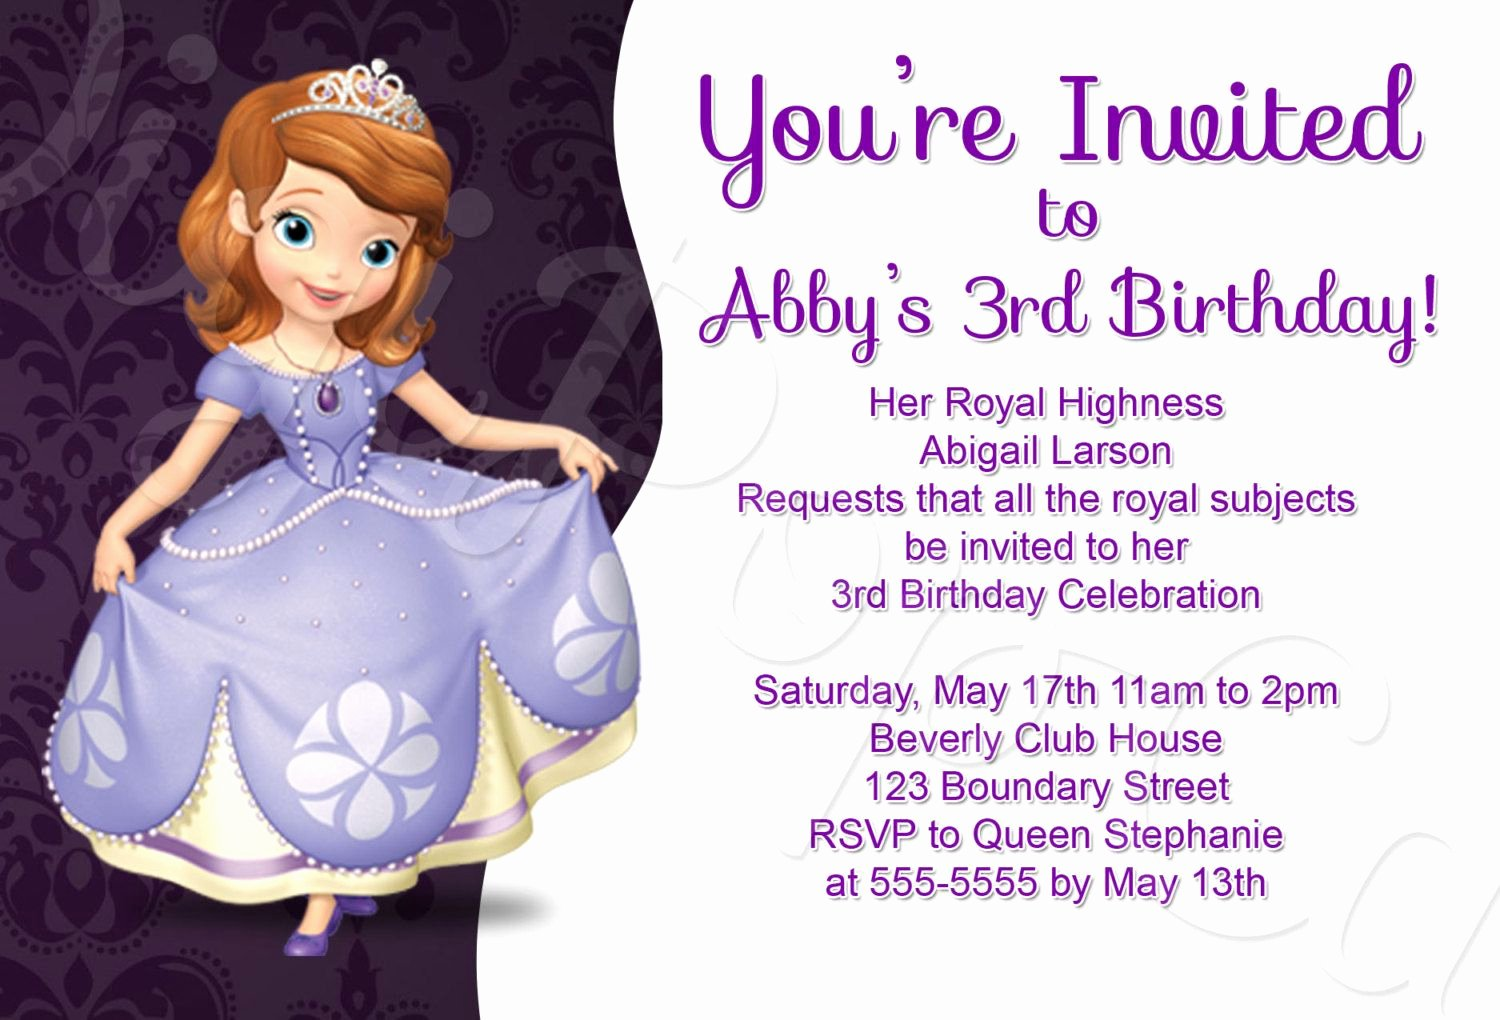 Sofia the First Invitation Templates Elegant Princess sofia Birthday Invitation Template Invitation Templates Designsearch Results for